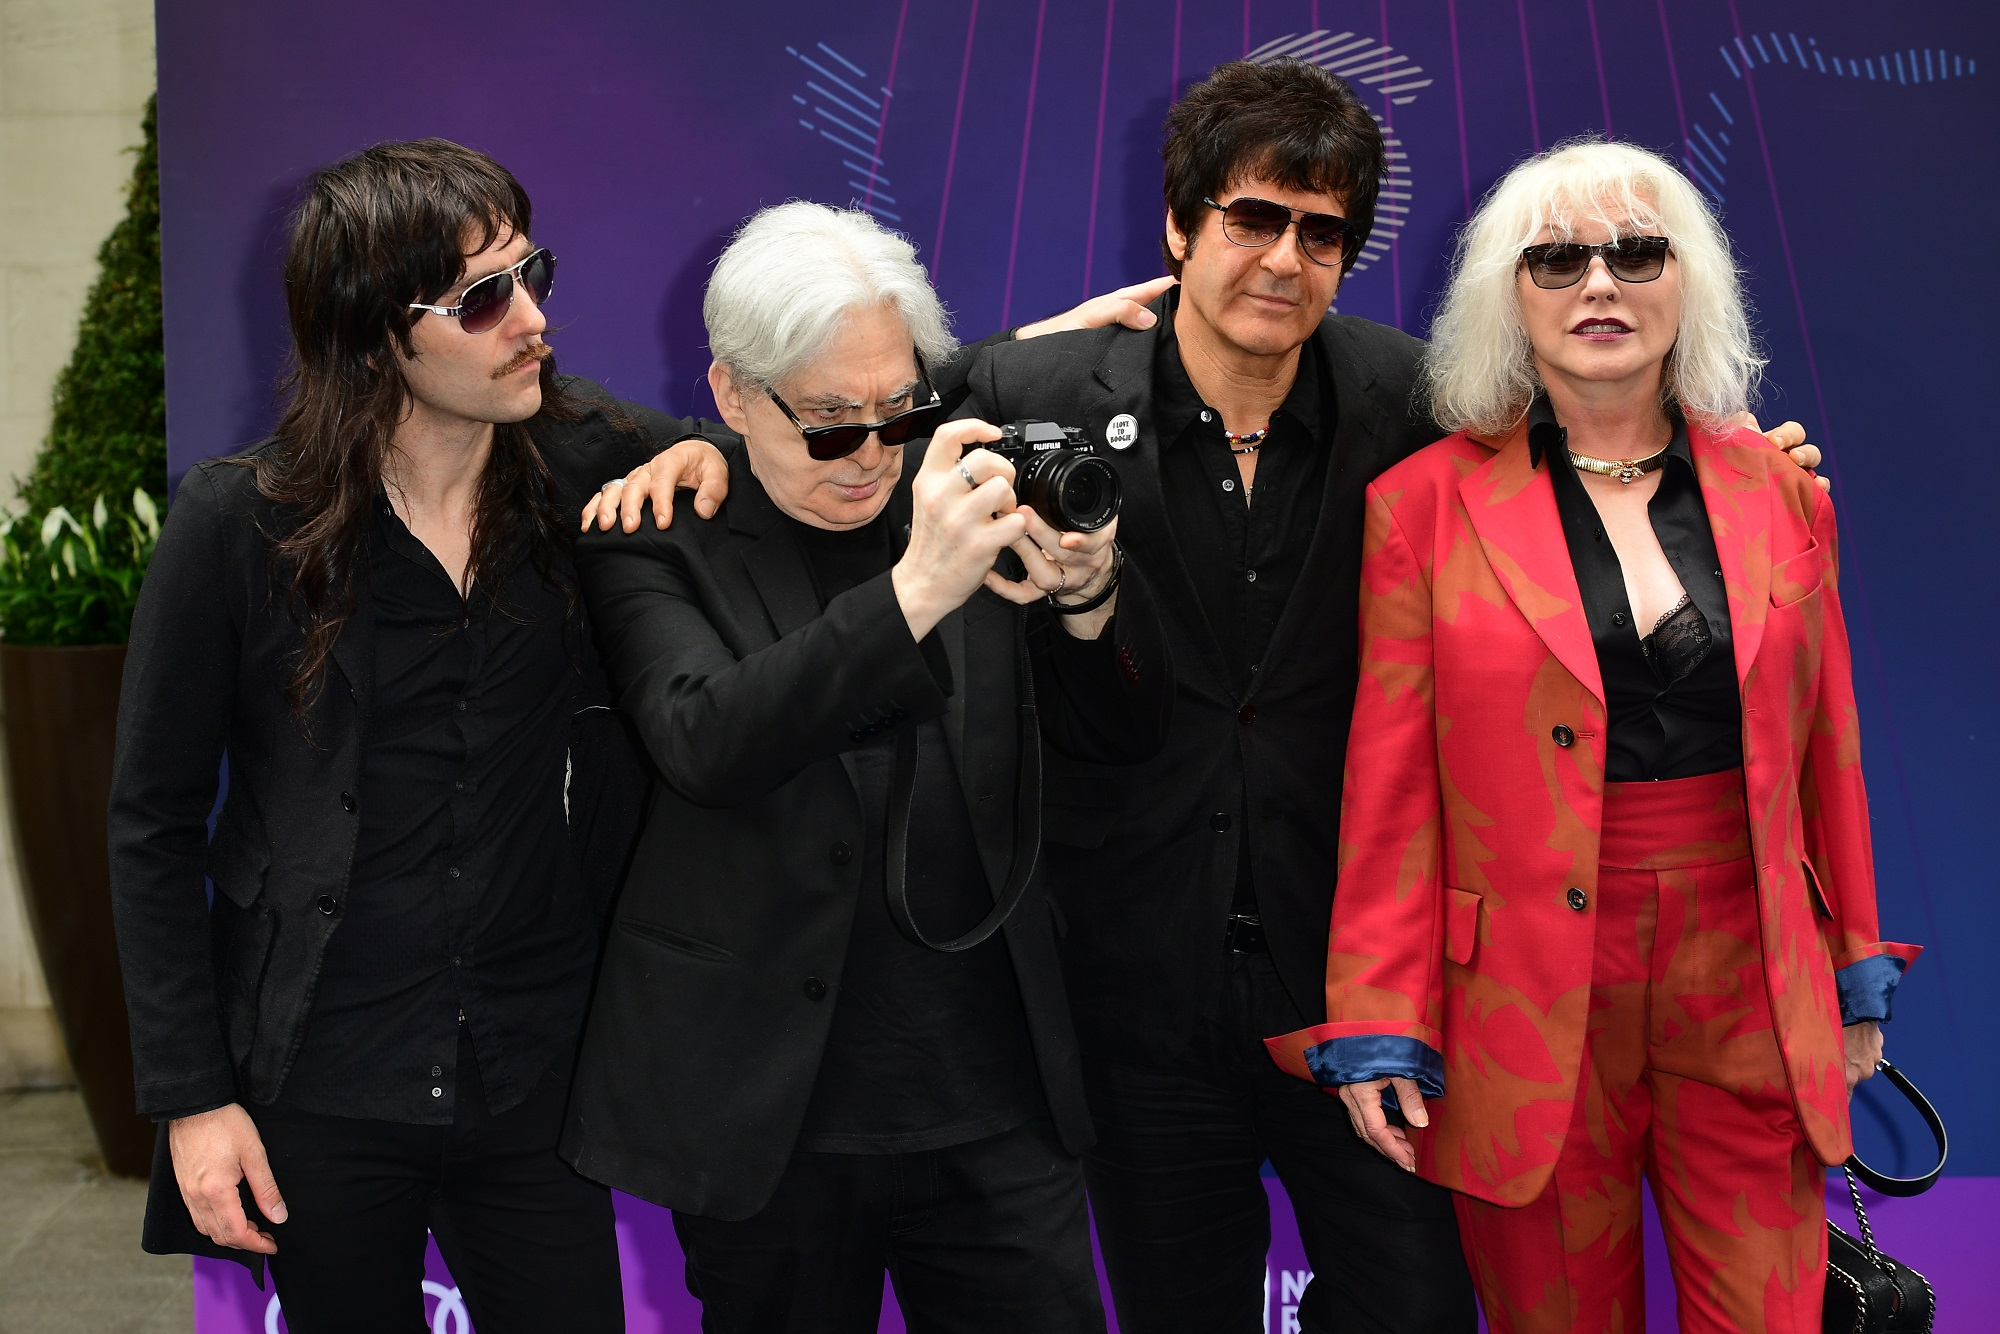 Matt Katz-Bohen, Chris Stein, Clem Burke and Debbie Harry (